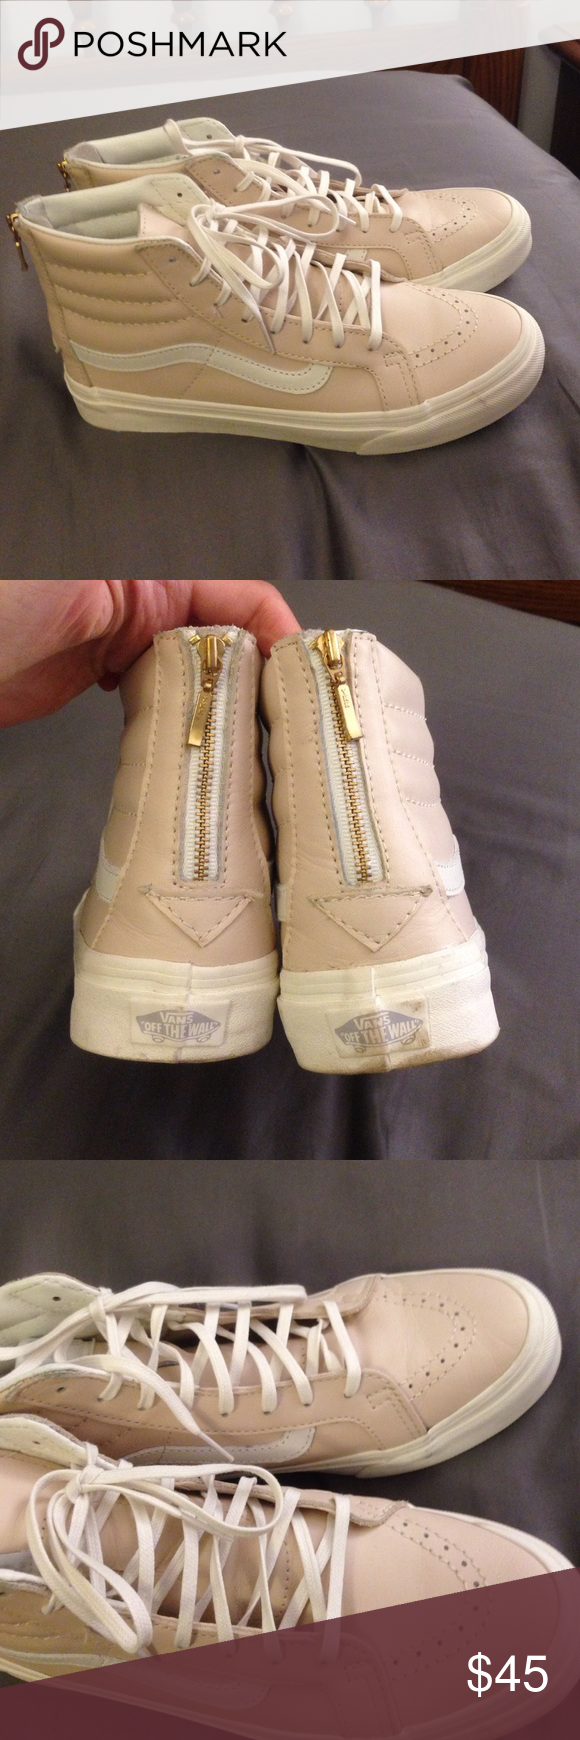 2b7017f4e3 Vans Cream Leather Skate Hi Slim Sneakers Light pink leather high top Vans  with laces and gold zip up the back. Only worn once